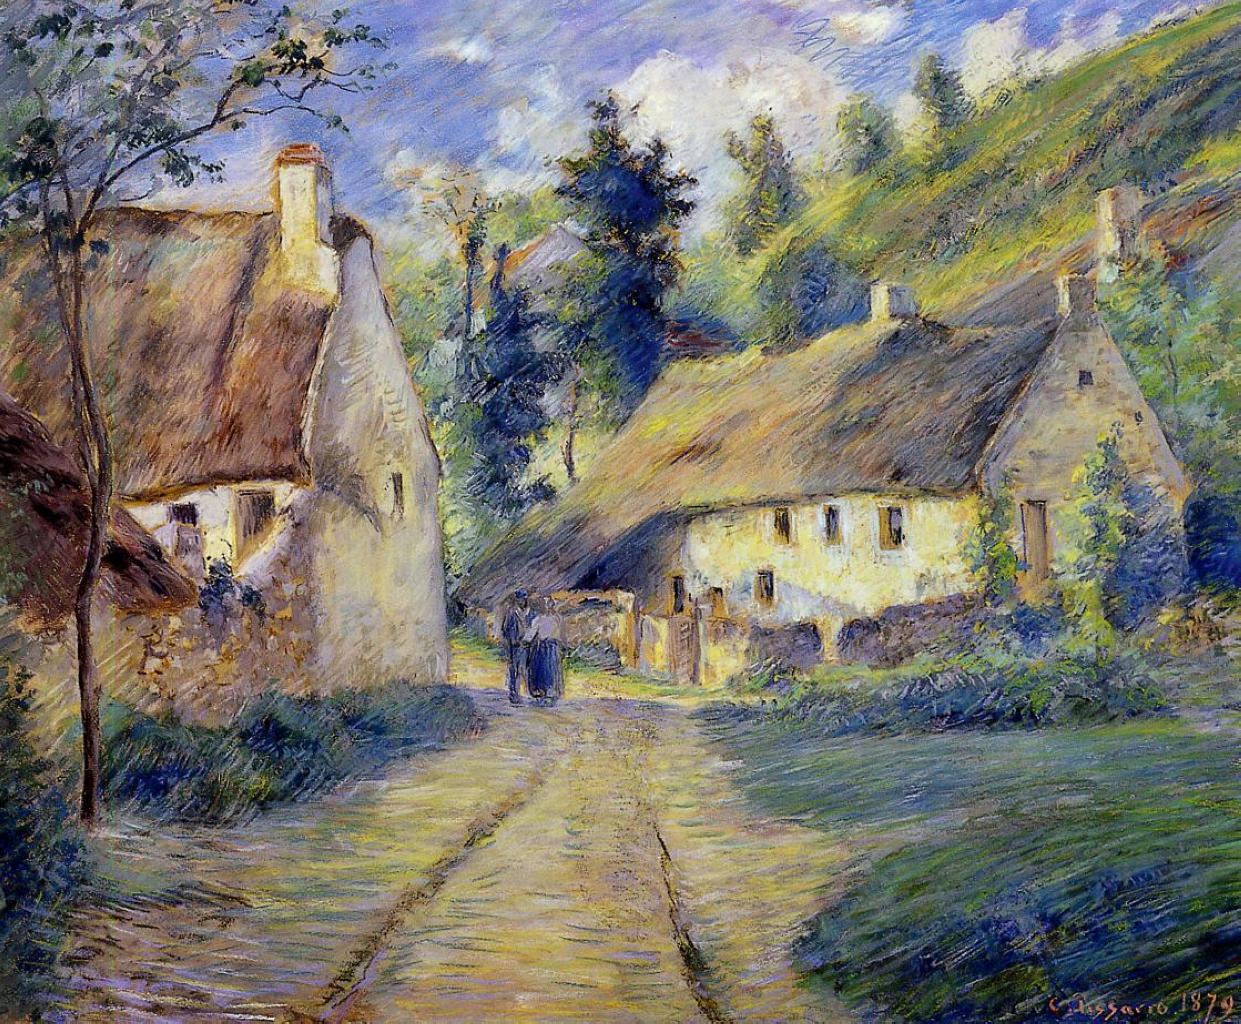 Cottages at Auvers, near Pontoise by Camille Pissarro, 1879